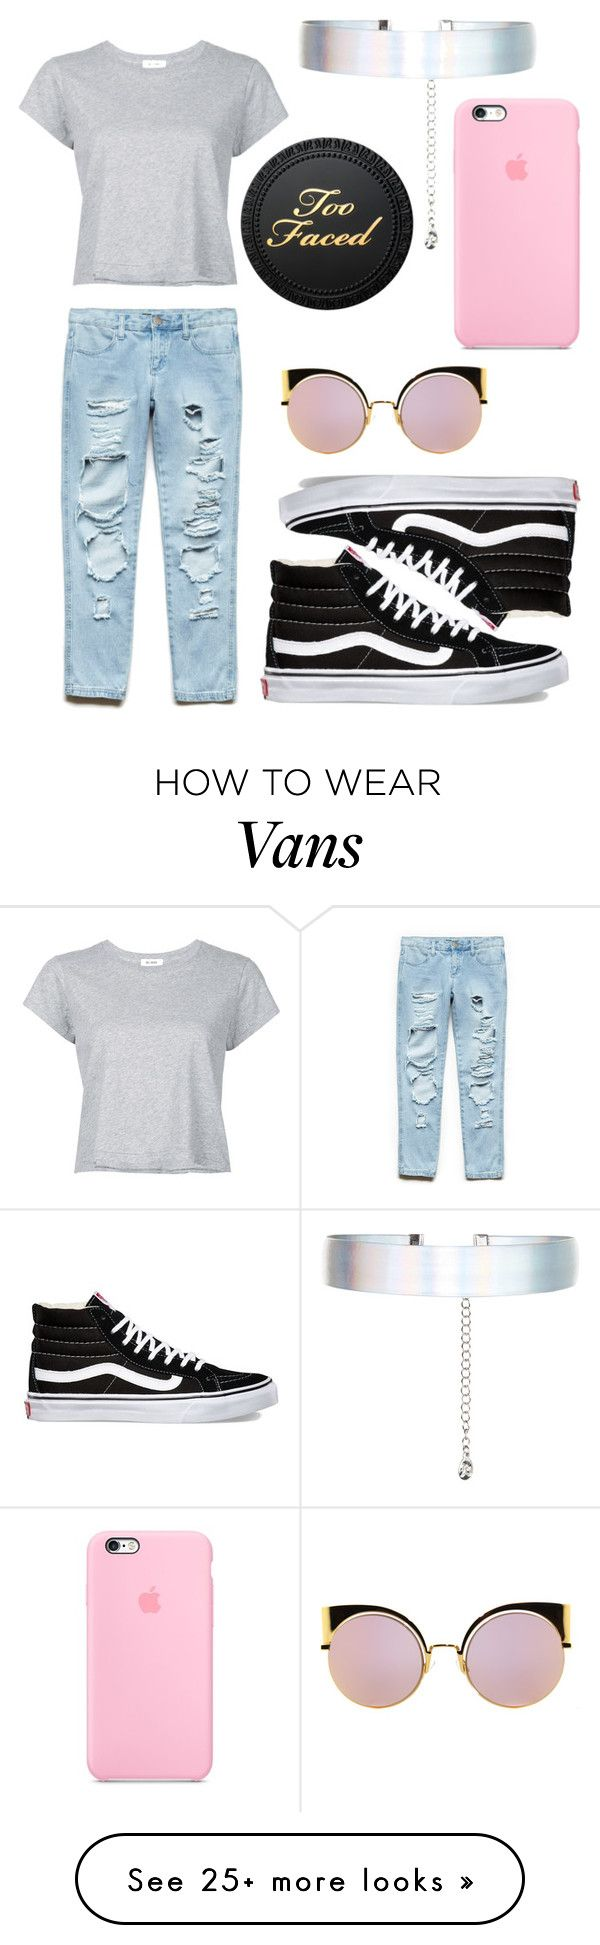 """fun in the sunny winter"" by galaxyofdonuts on Polyvore featuring Forever 21, RE/DONE, Vans, Accessorize, Fendi, Christmas, BeautyTrend, Leggings, WardrobeStaples and boldeyebrows"